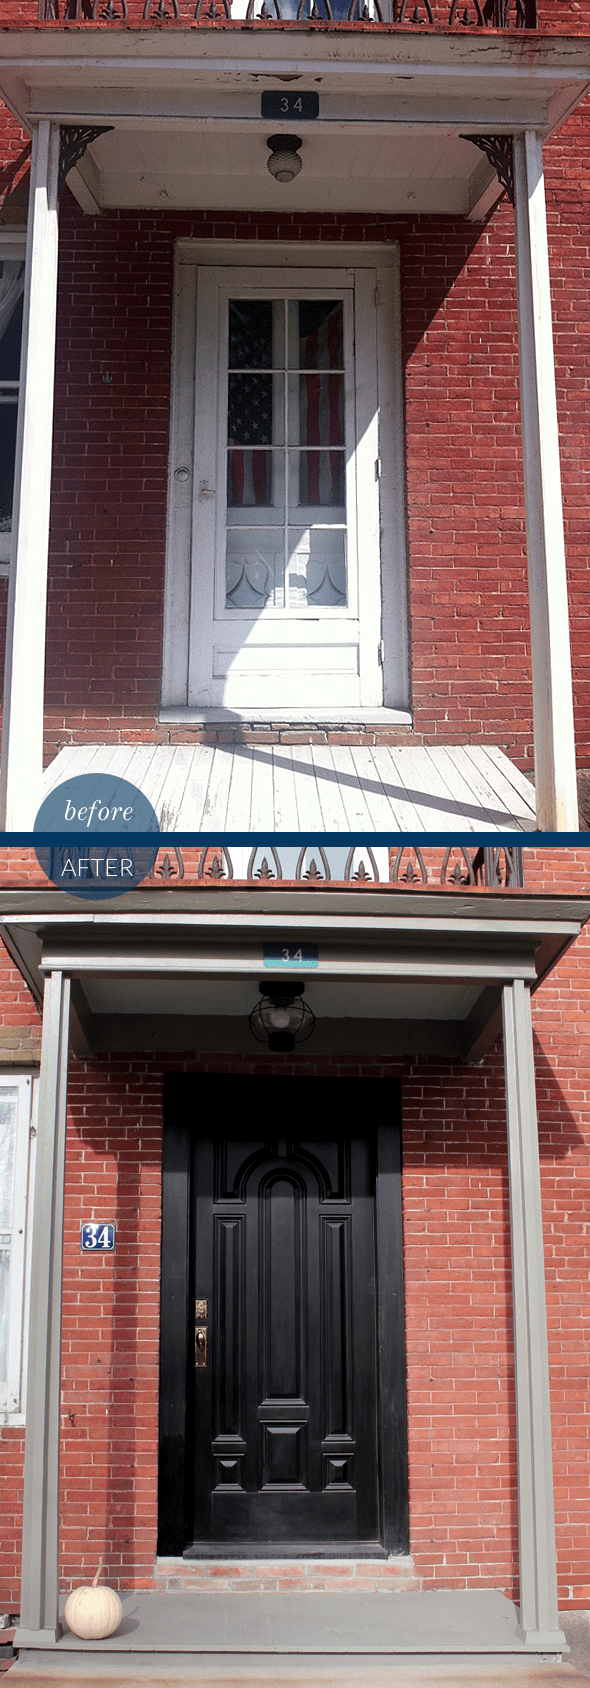 beforeafter_frontdoor